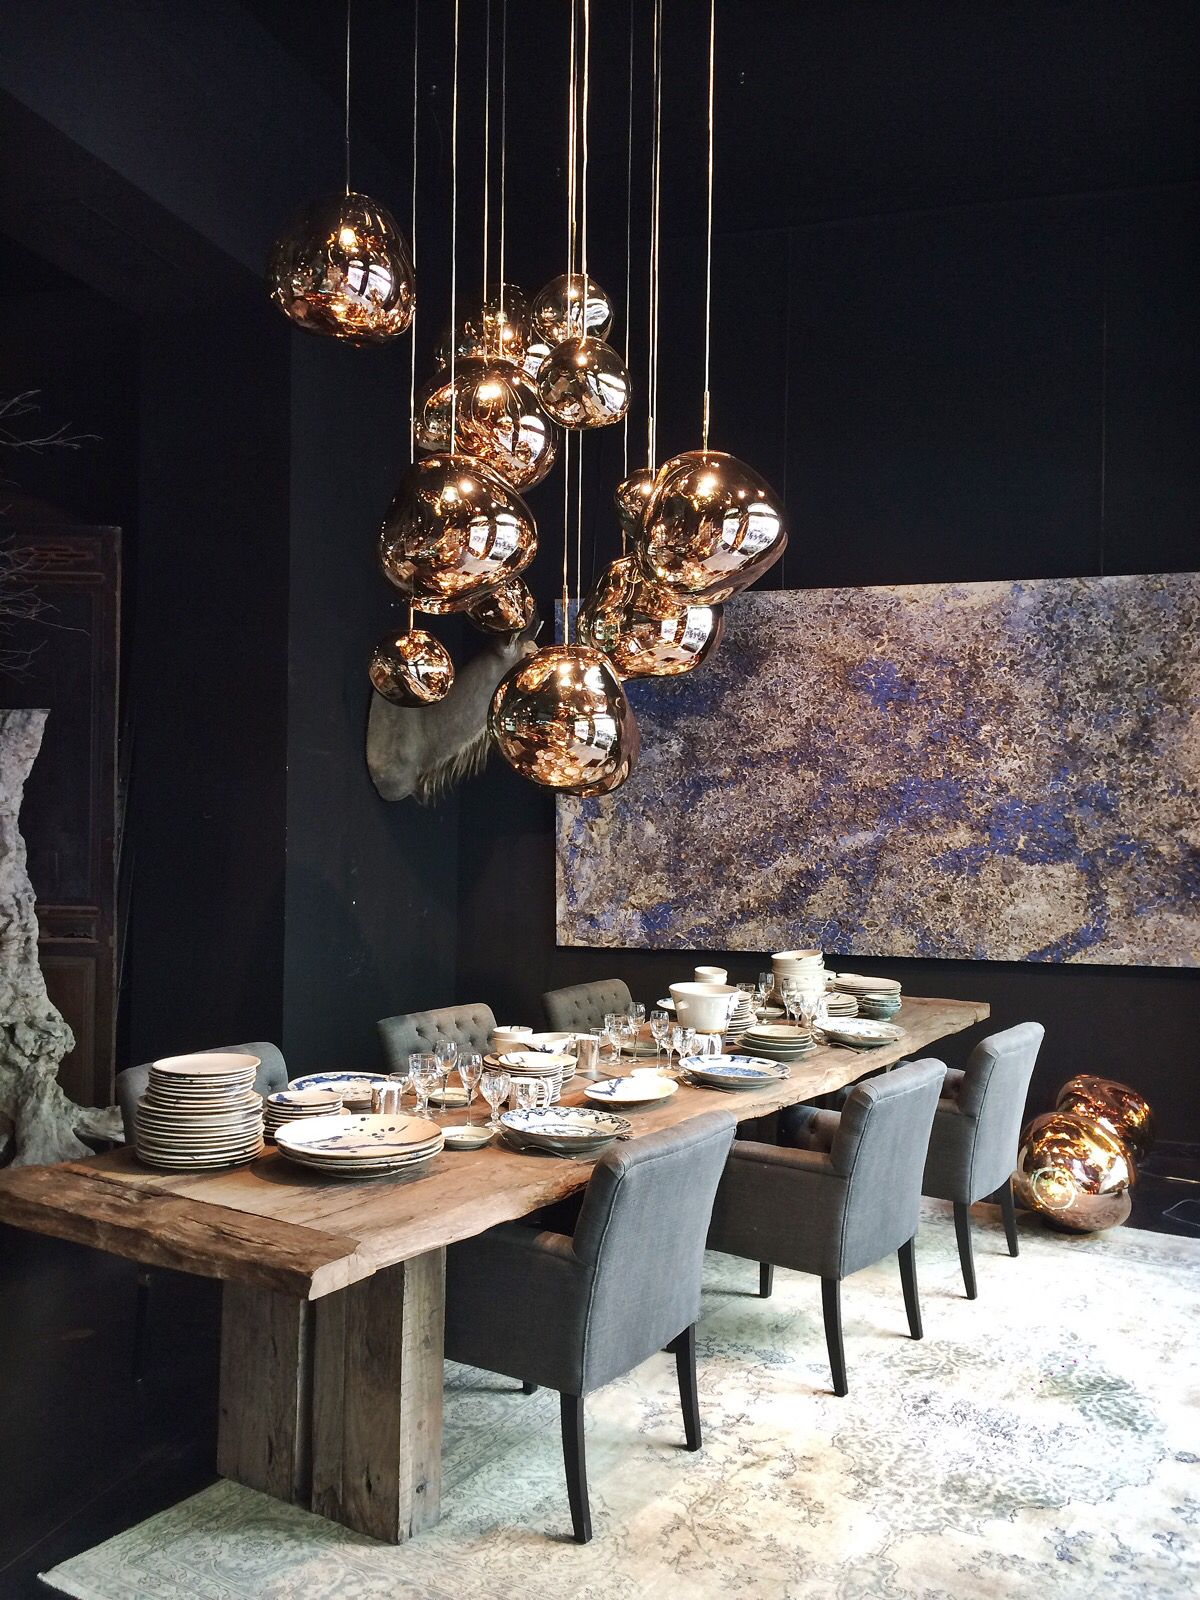 Tom Dixon Copper Shade From The Melt Family Lamp Free Form Polycarbonate Sculptural Shade Squashed Dining Lighting Modern Dining Room Dining Room Chandelier